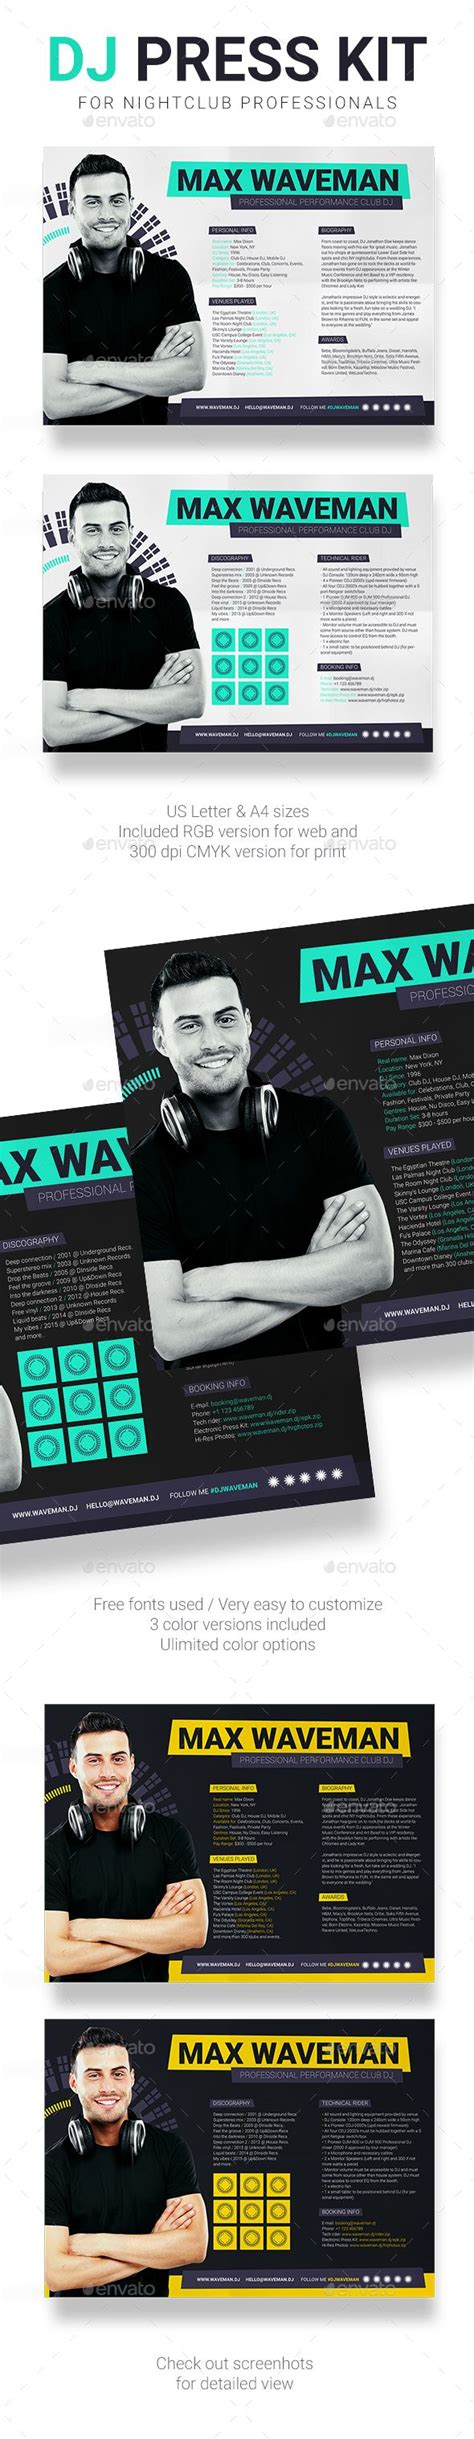 prodj dj press kit rider resume psd template